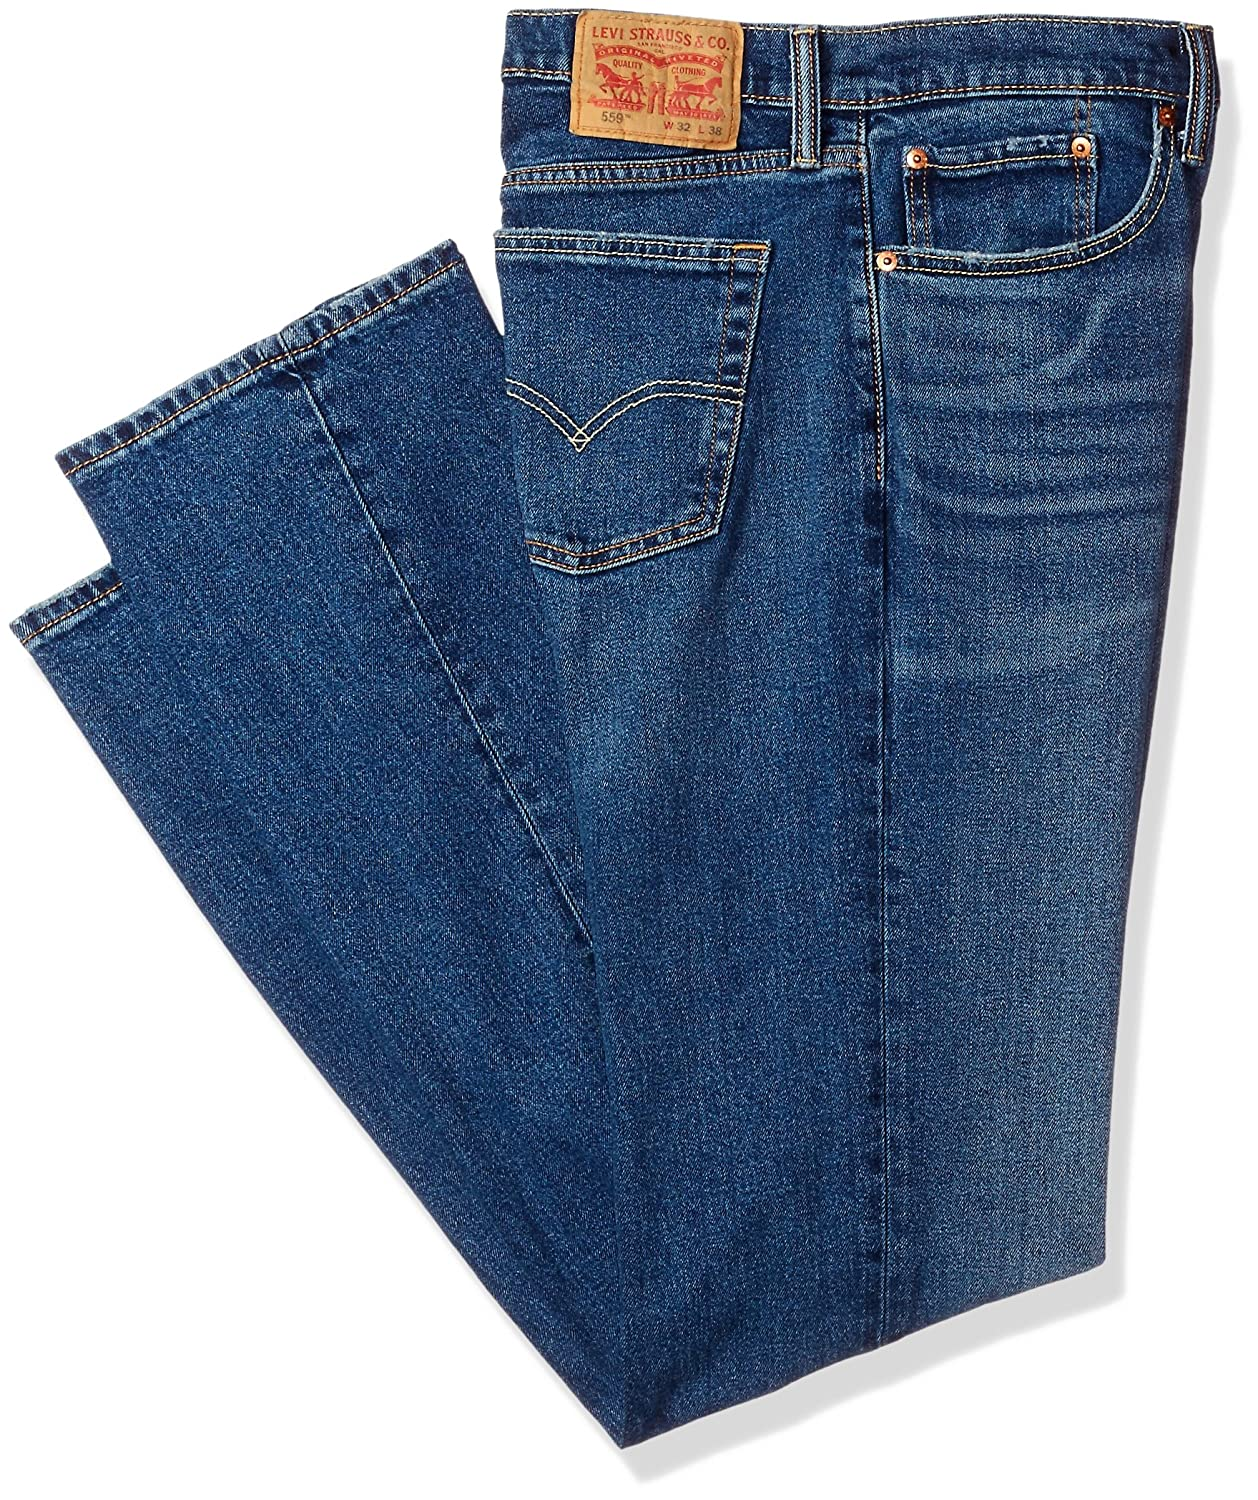 8251f7761cc Levi\'s 559 Relaxed Straight is made for guys who like to be comfortable.  Sits below the waist, has extra room through the thigh with a straight leg.